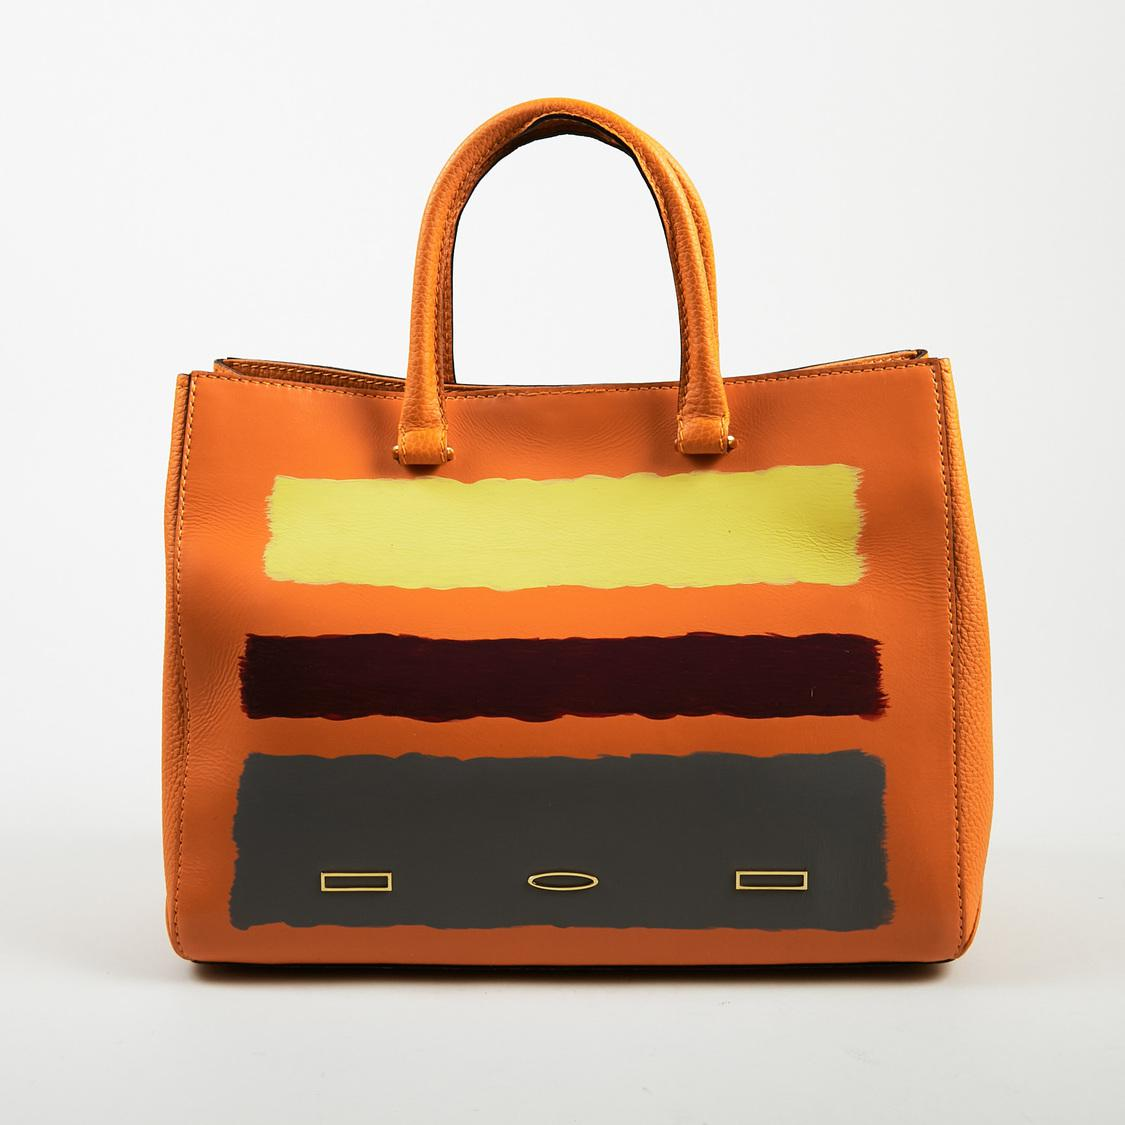 152f0ac8265 Lyst - VBH Limited Edition Orange Multicolor Leather Painted Stripe ...